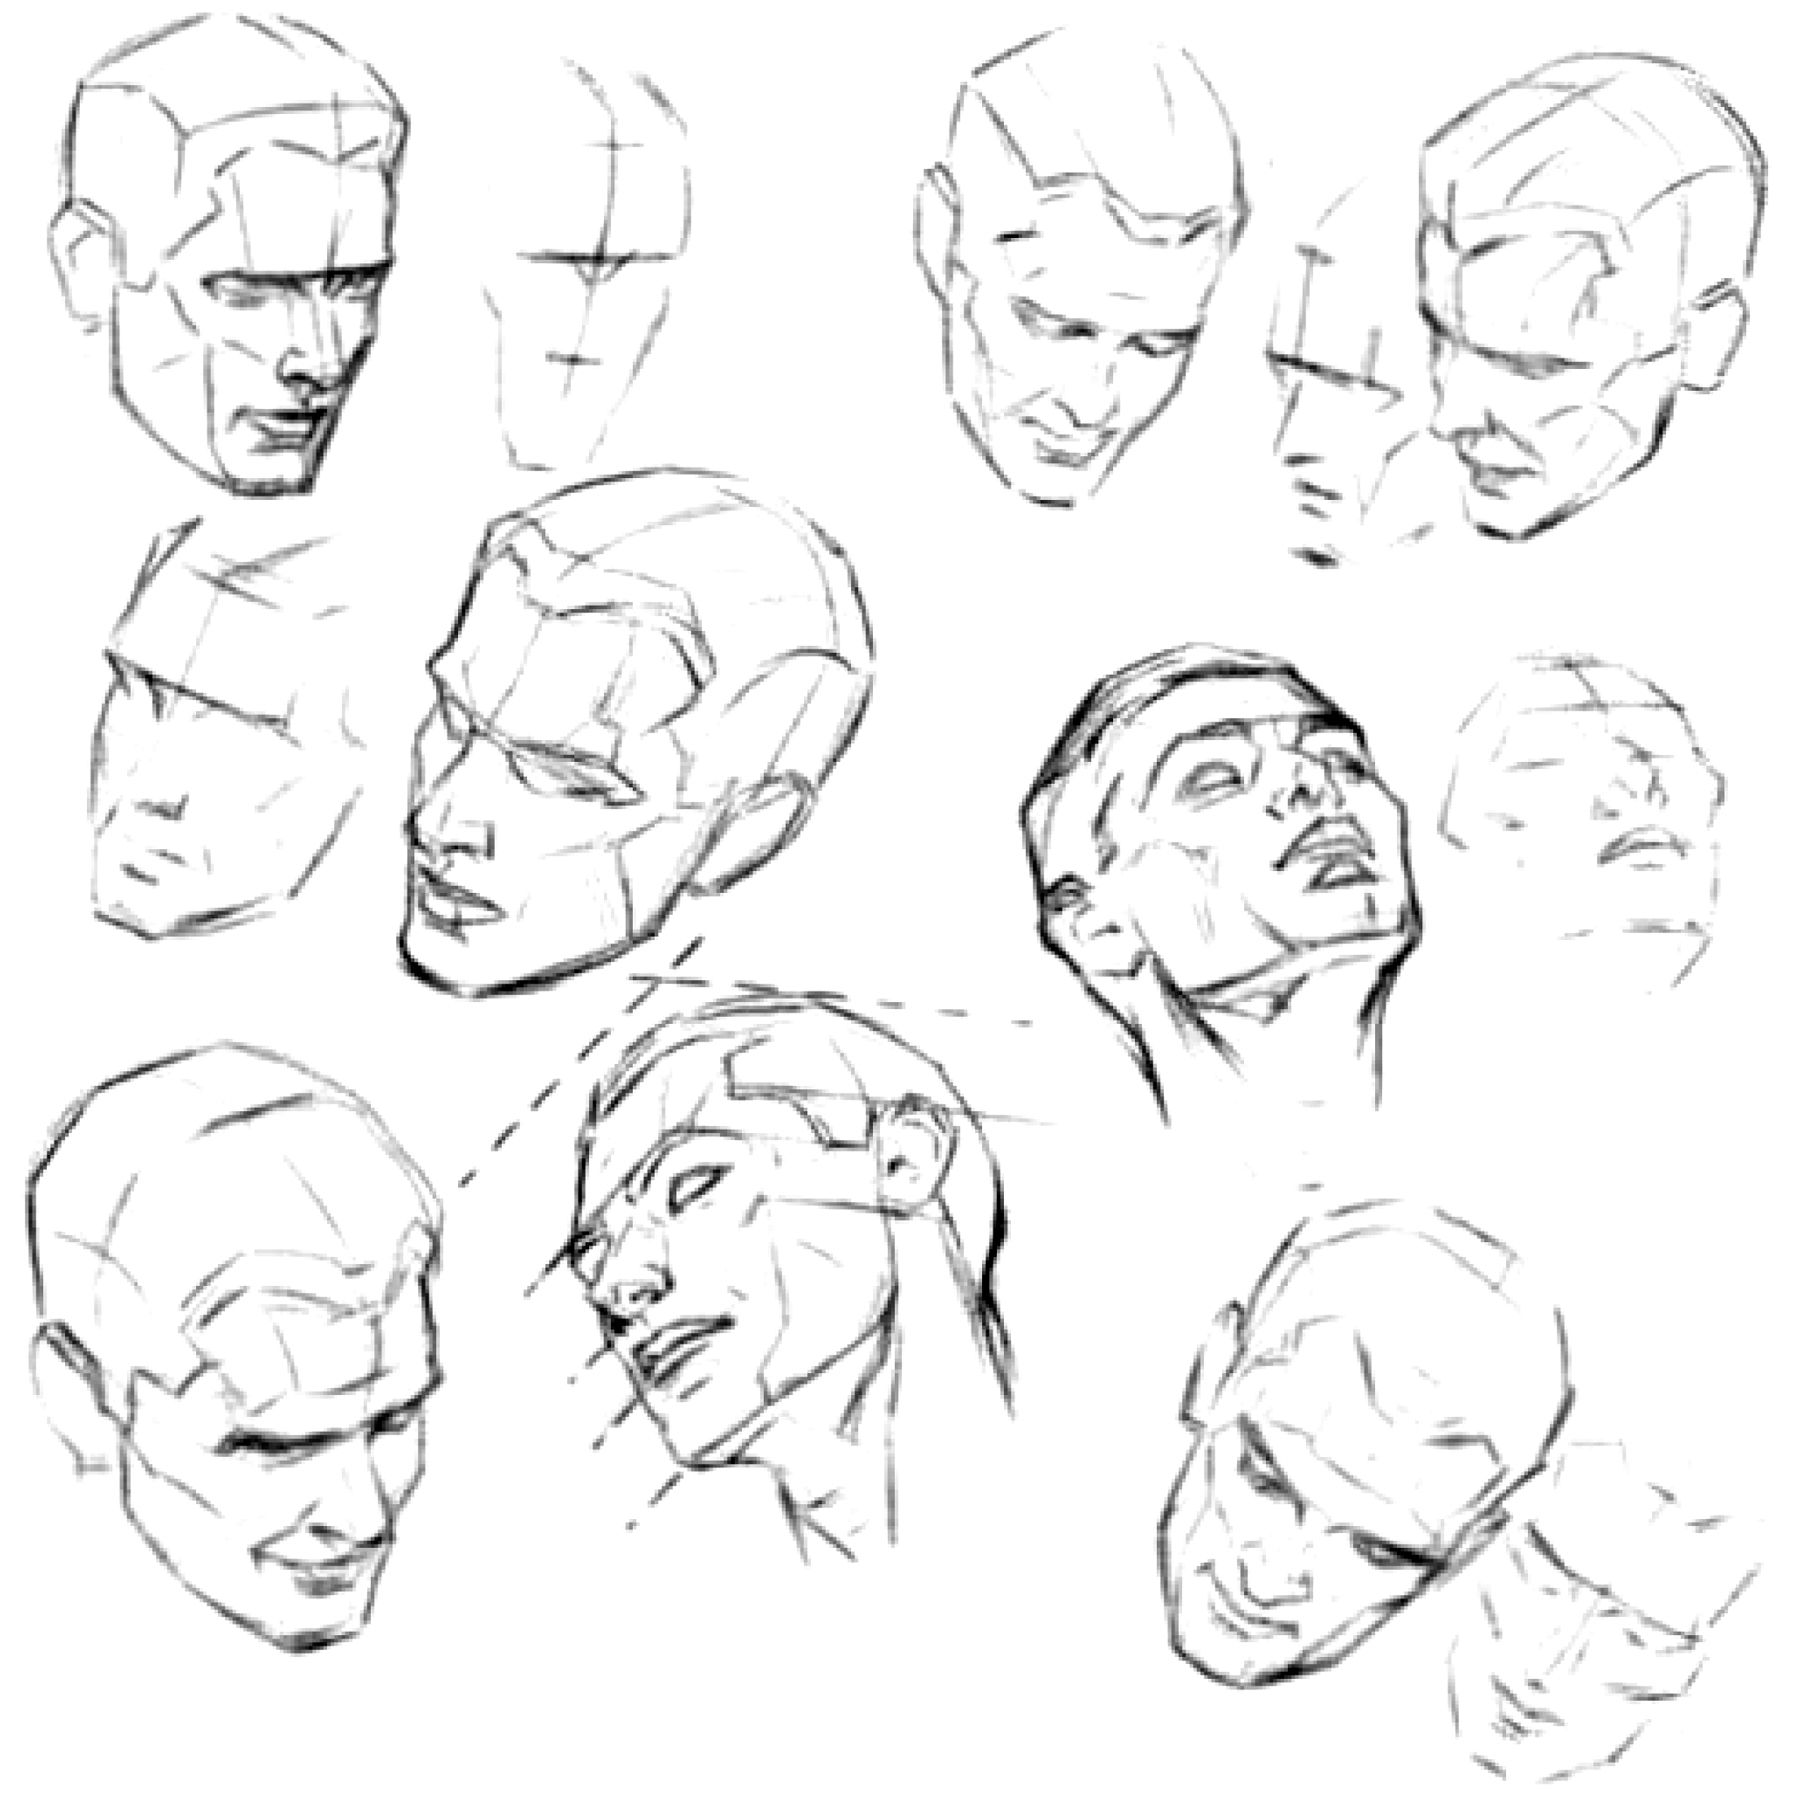 How To Draw The Face And Head In Perspective To Keep Correct Proportions When Slanting Or Tilting Head How To Draw Step By Step Drawing Tutorials Face Drawing Drawing Tutorial